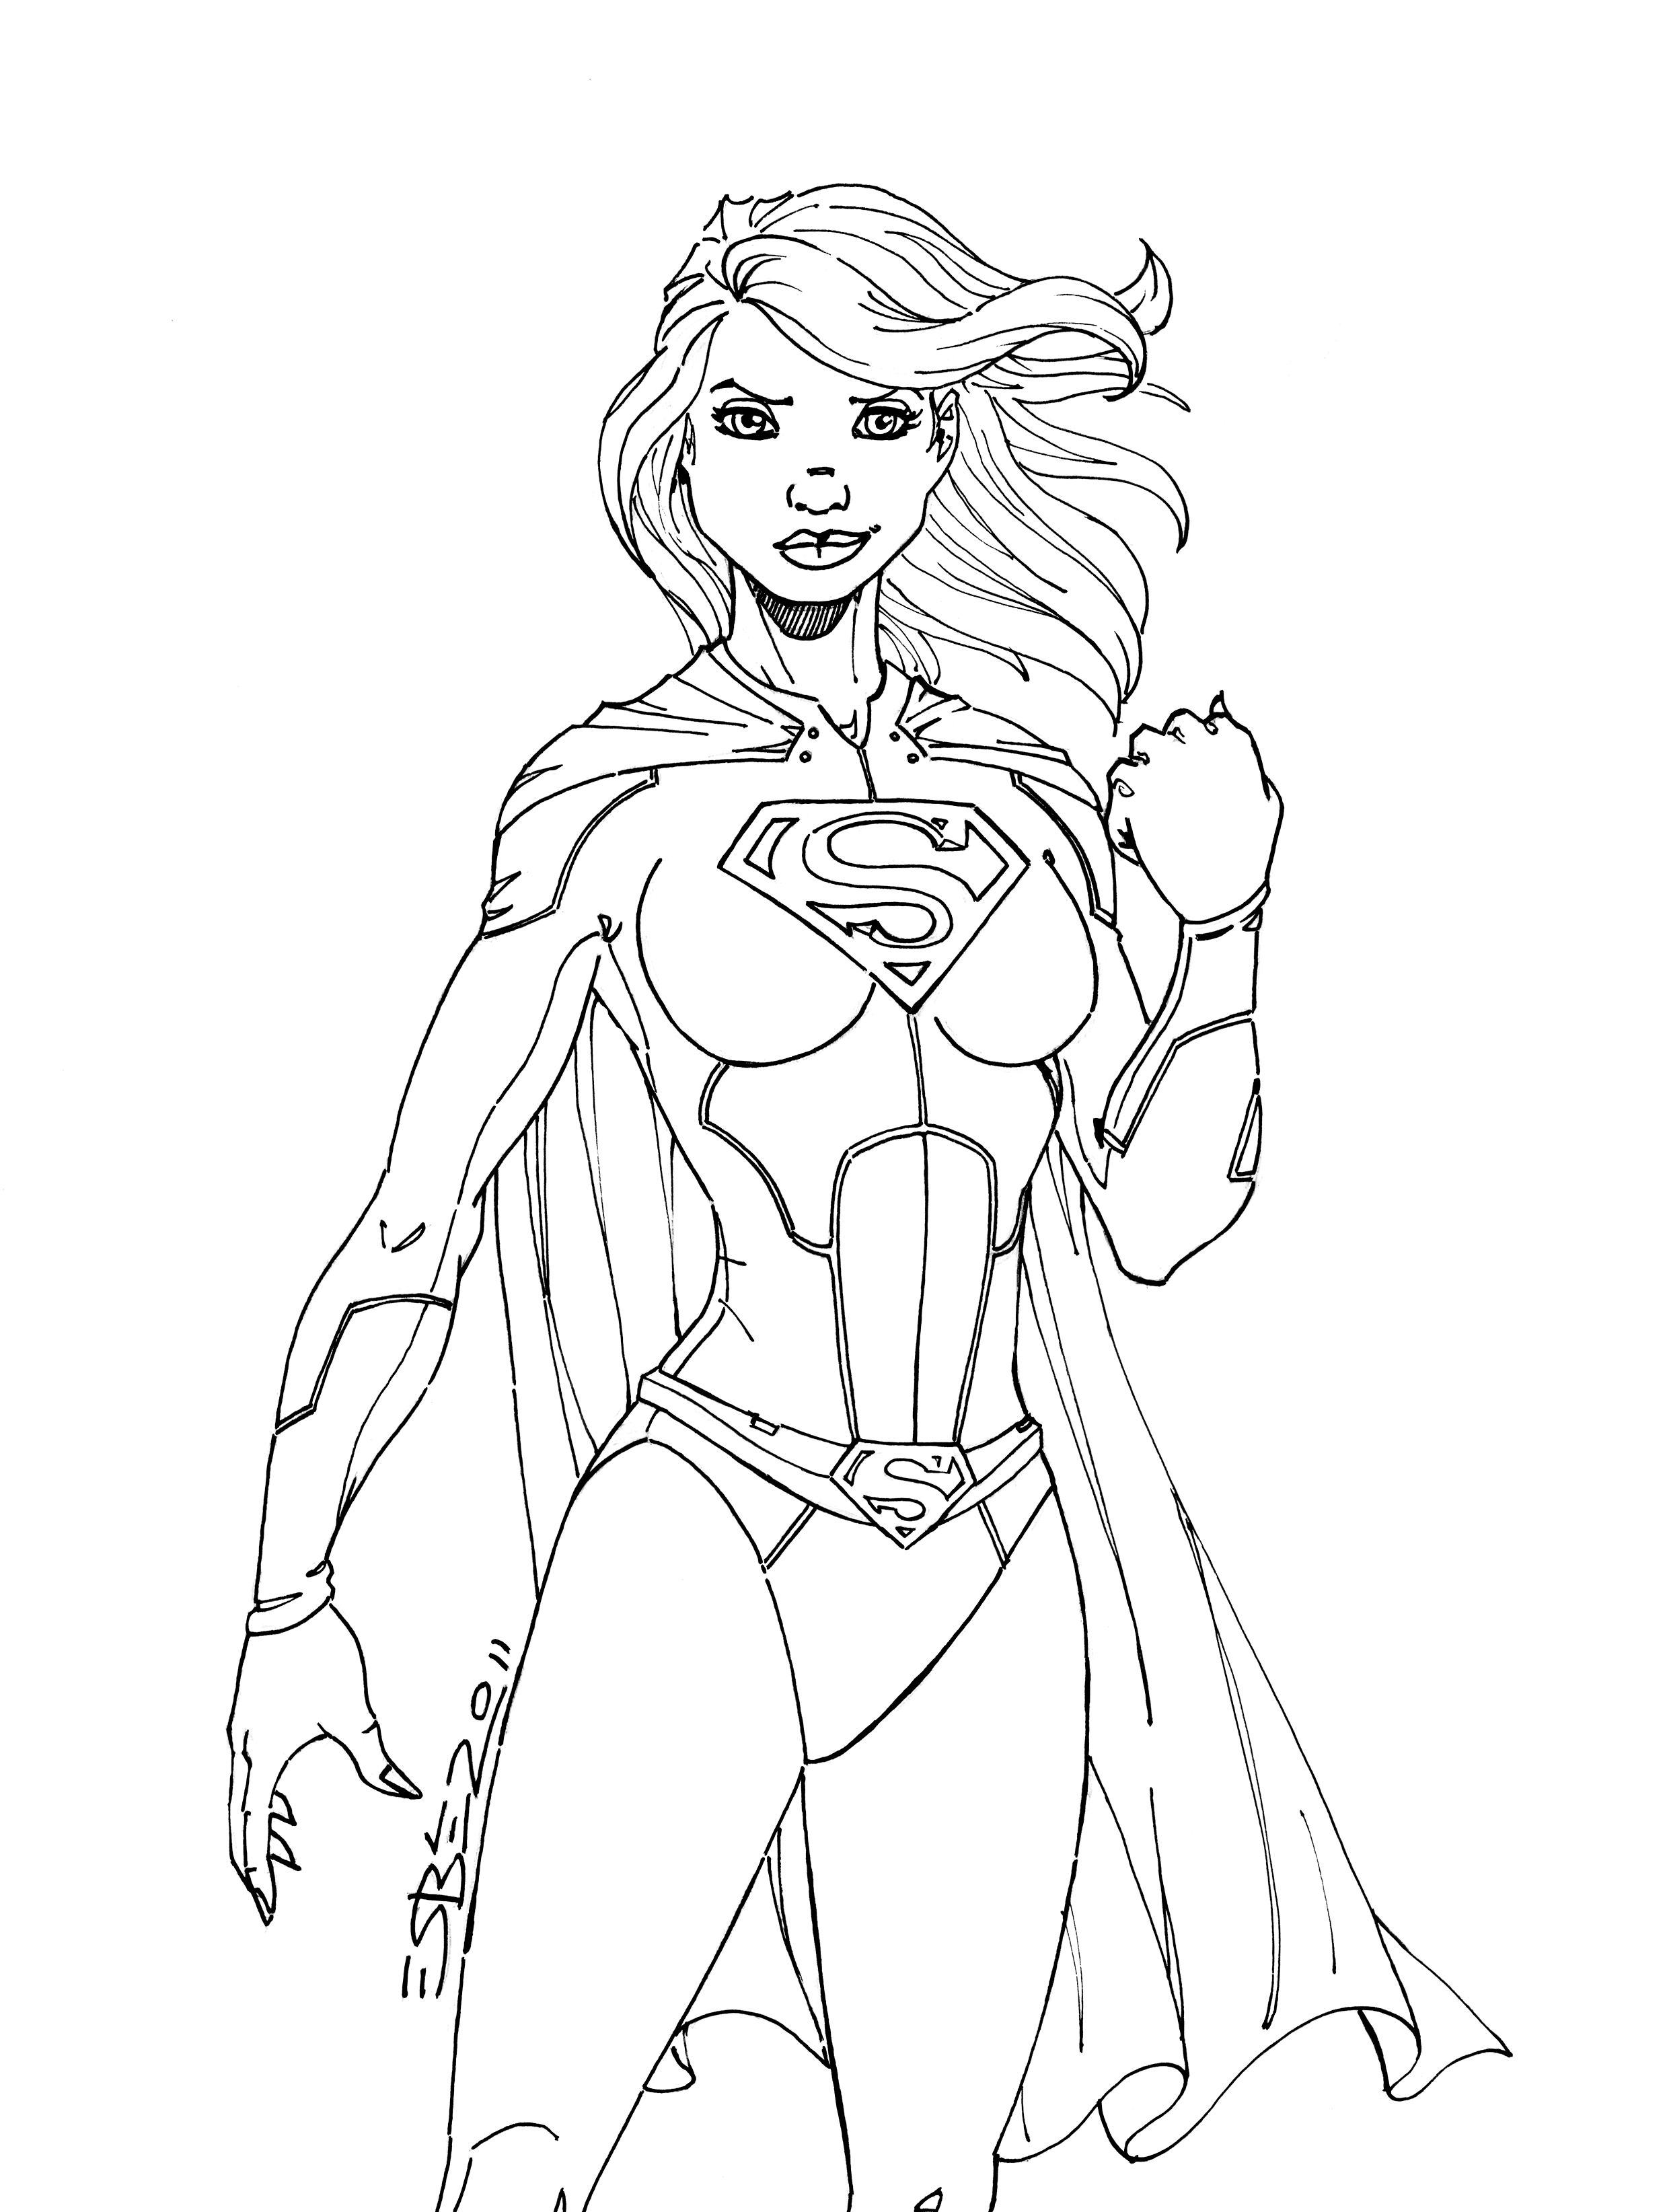 Supergirl Coloring Pages To Download And Print For Free Batgirl And Supergirl Coloring Pages Printable